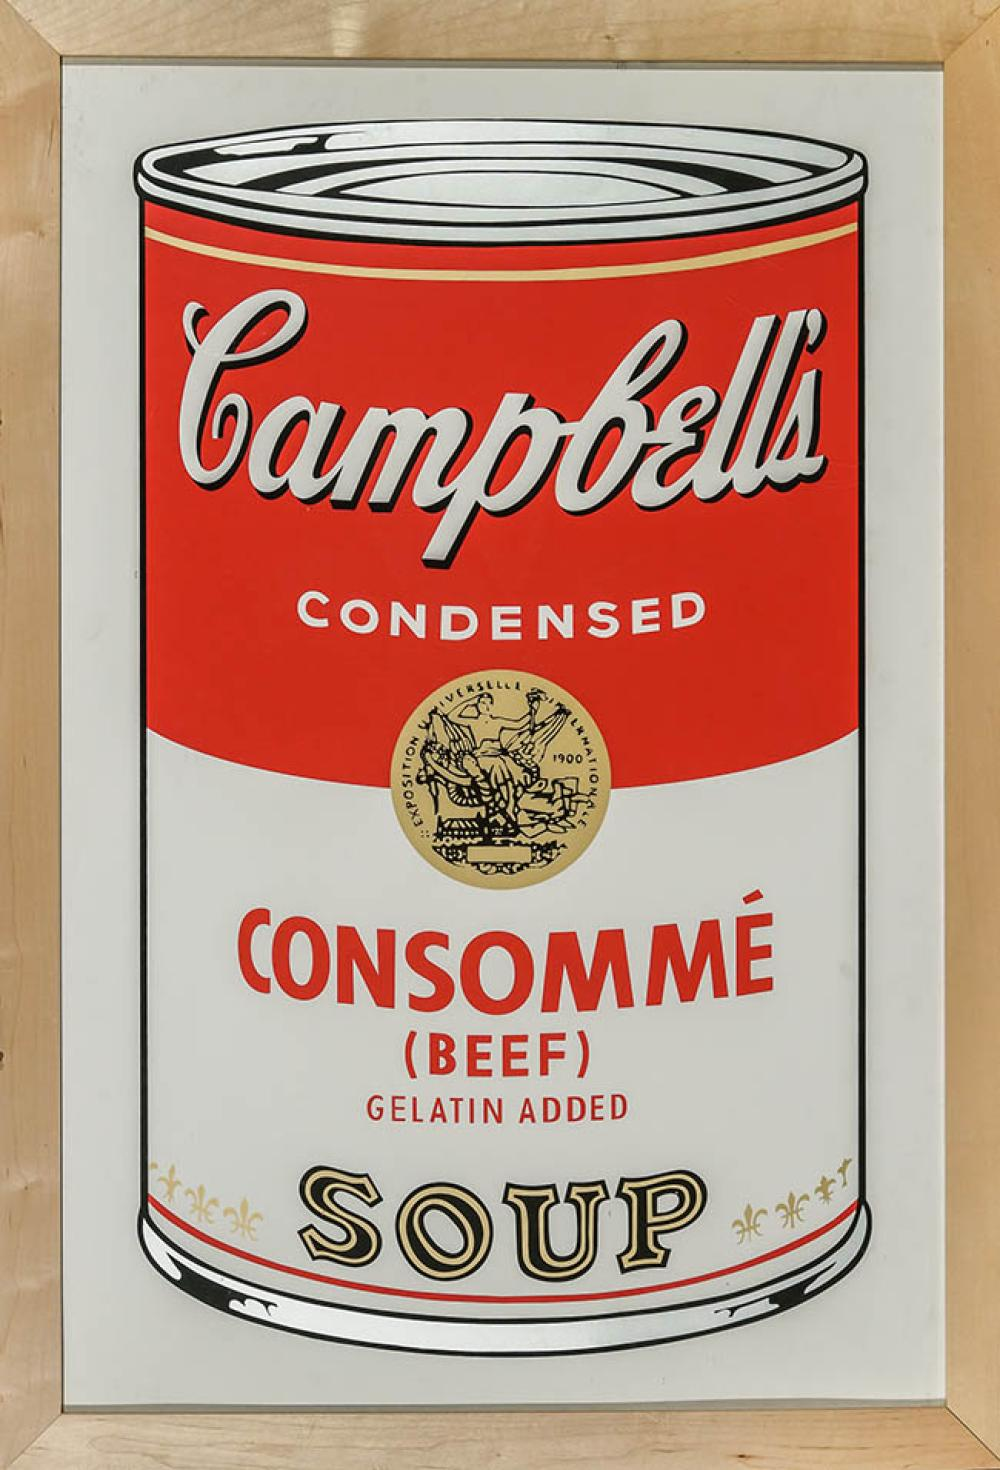 After Andy Warhol (American 1928-1987), Beef Consommé from Campbell's Soup I